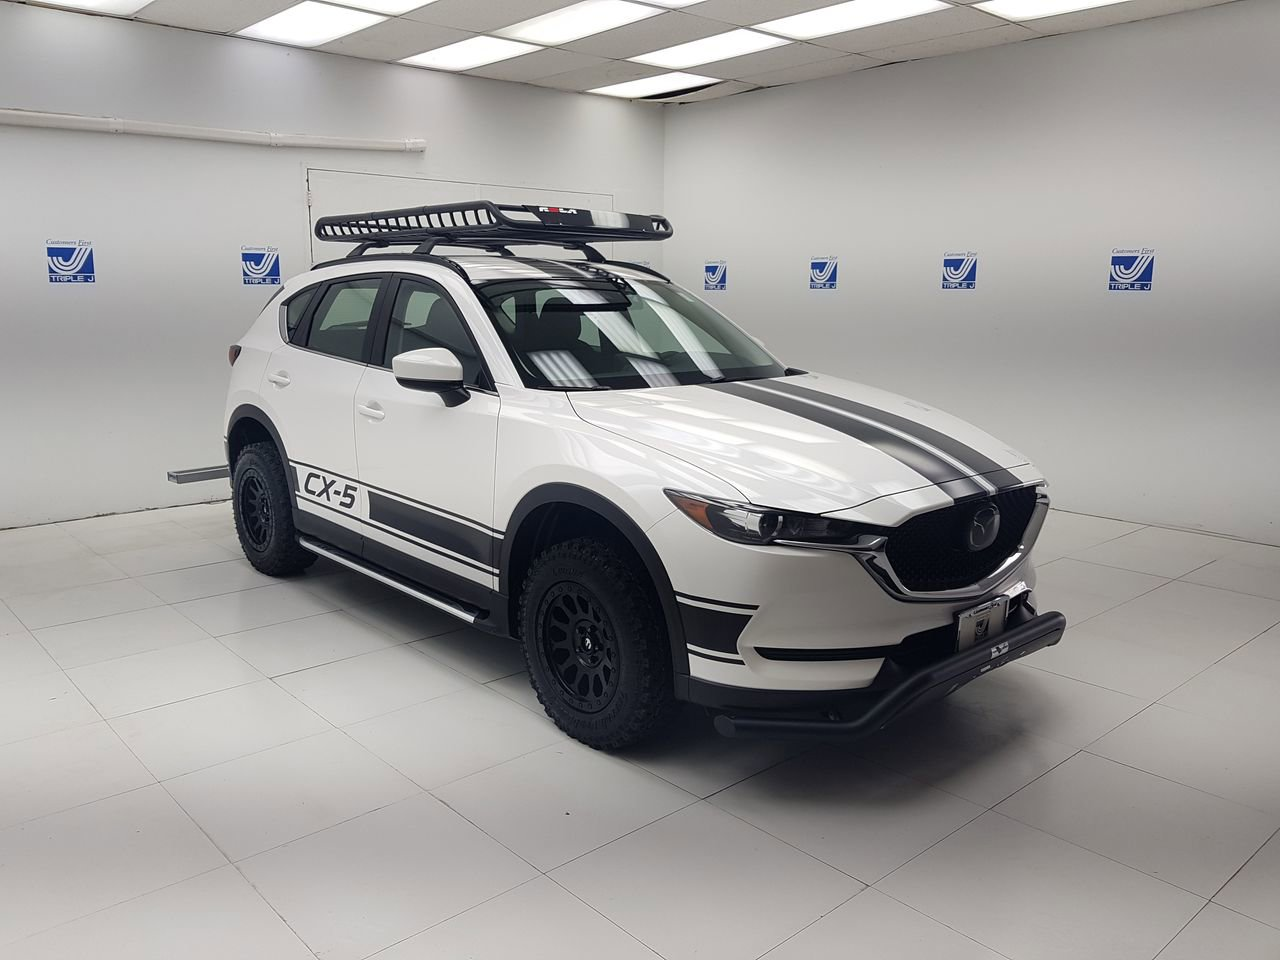 New 2021 Mazda CX-5 Sport with Lift Kit & More!